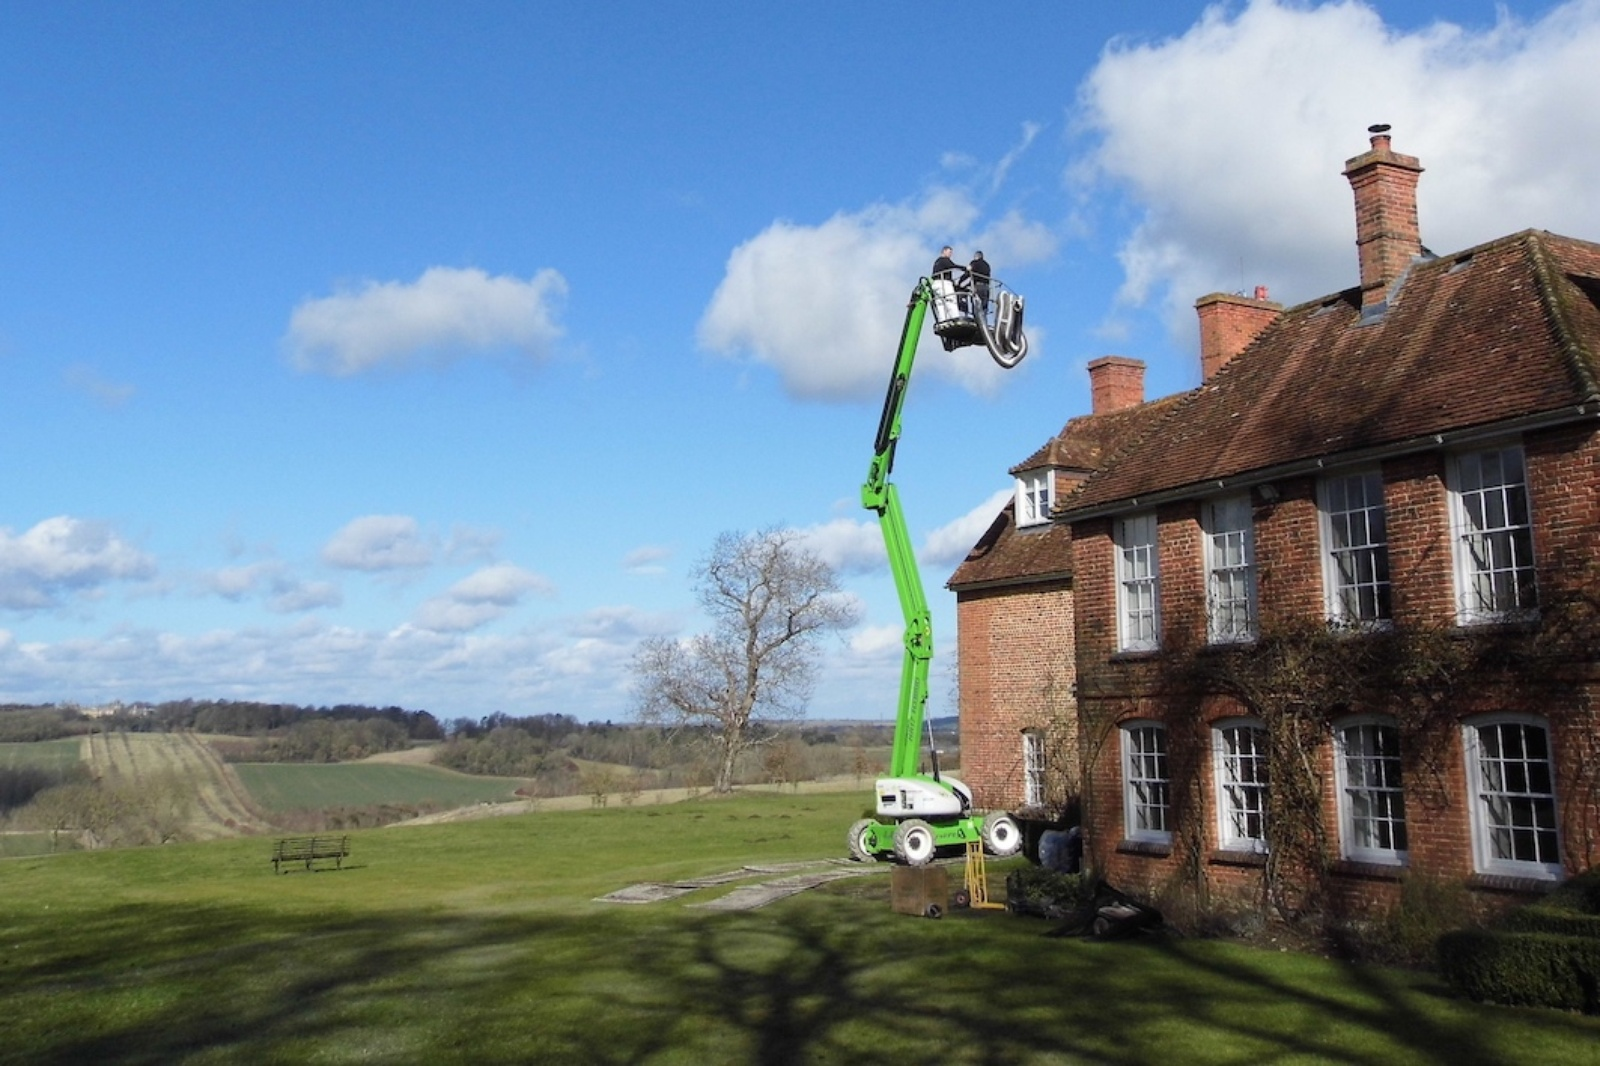 Using a cherry picker and grass boards to protect a lawn at a manor house.